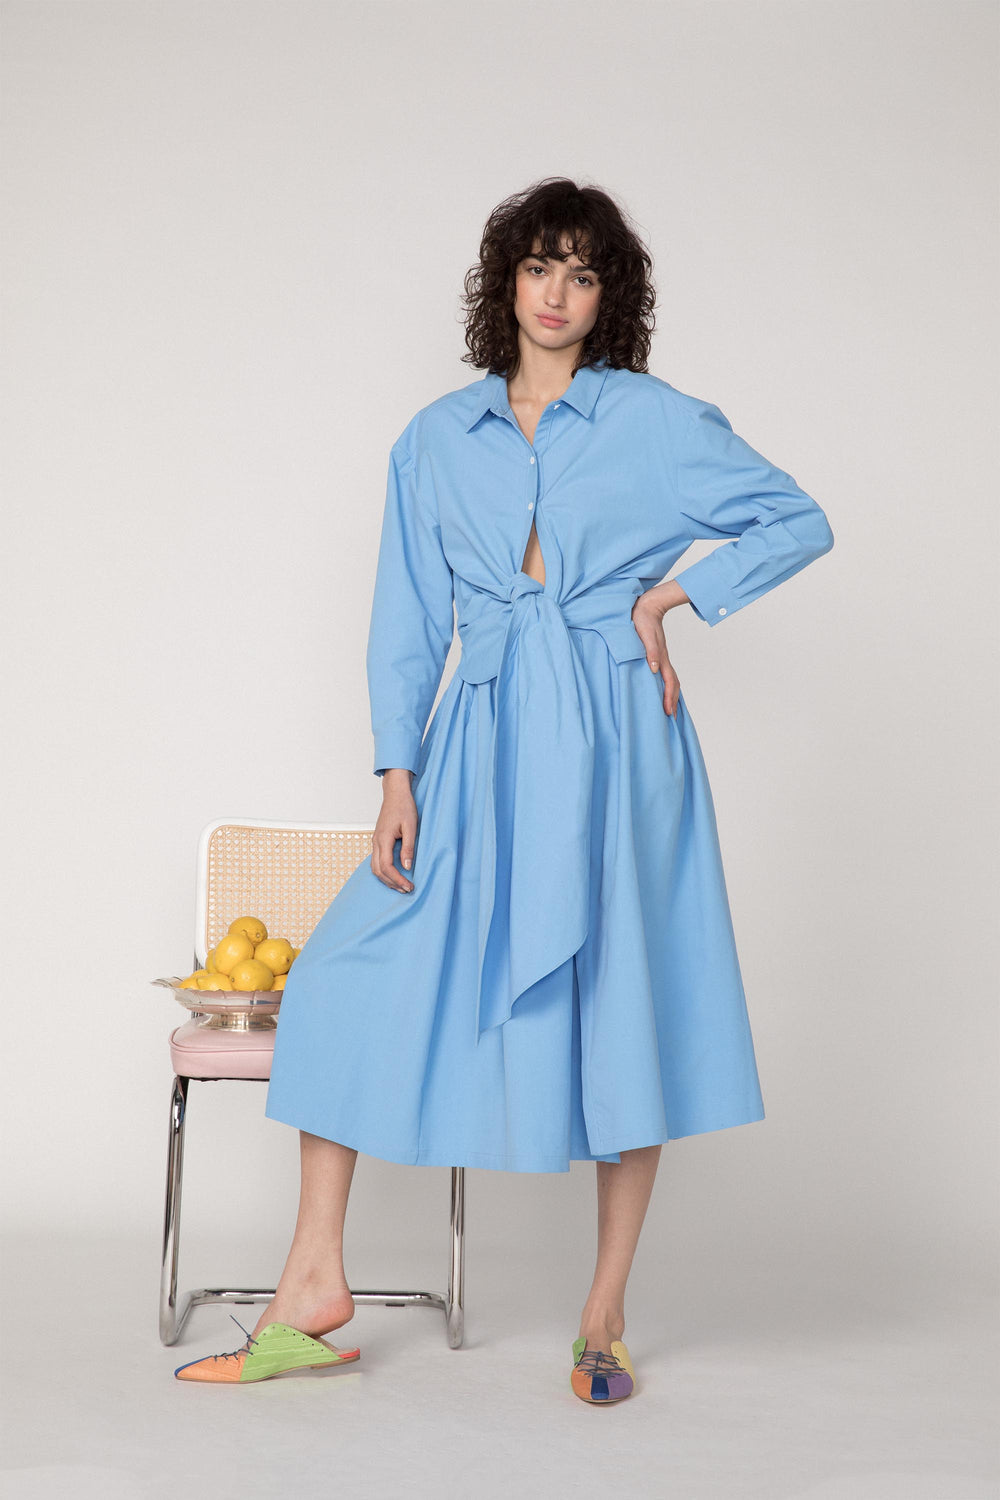 C.B.D. (Cute Button-Down Dress)